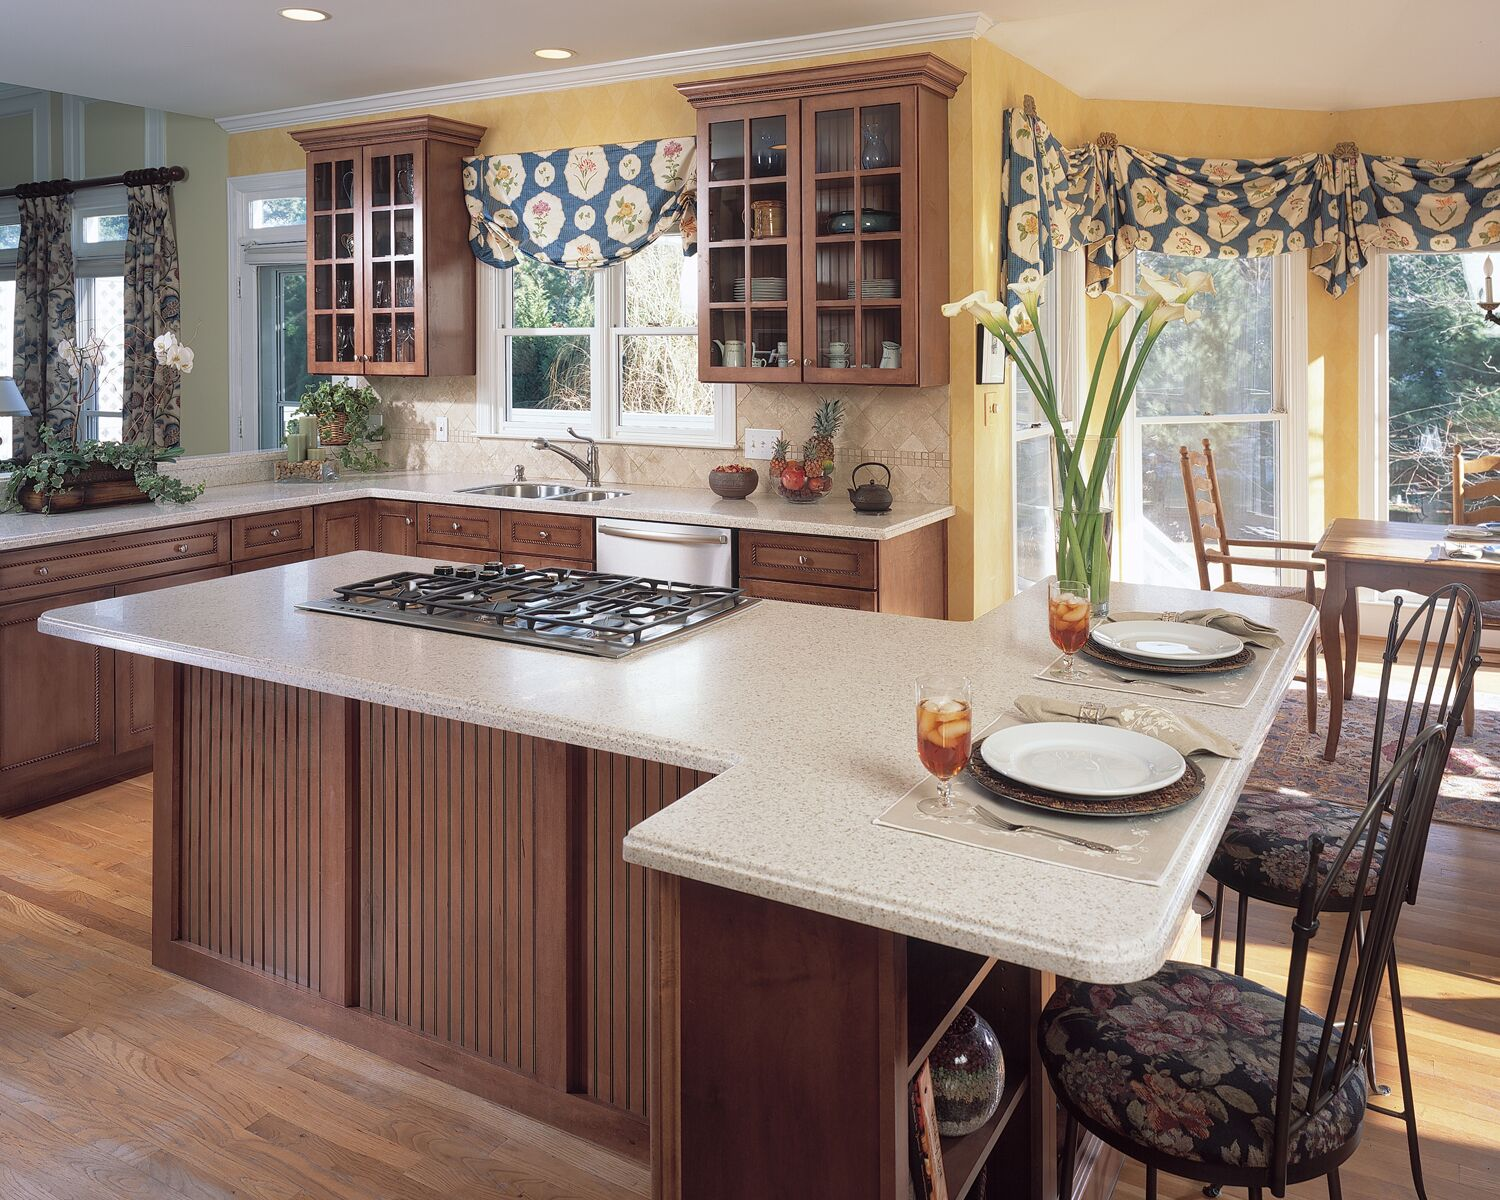 Residential Kitchen, HI-MACS Tambora Solid Surface Countertops